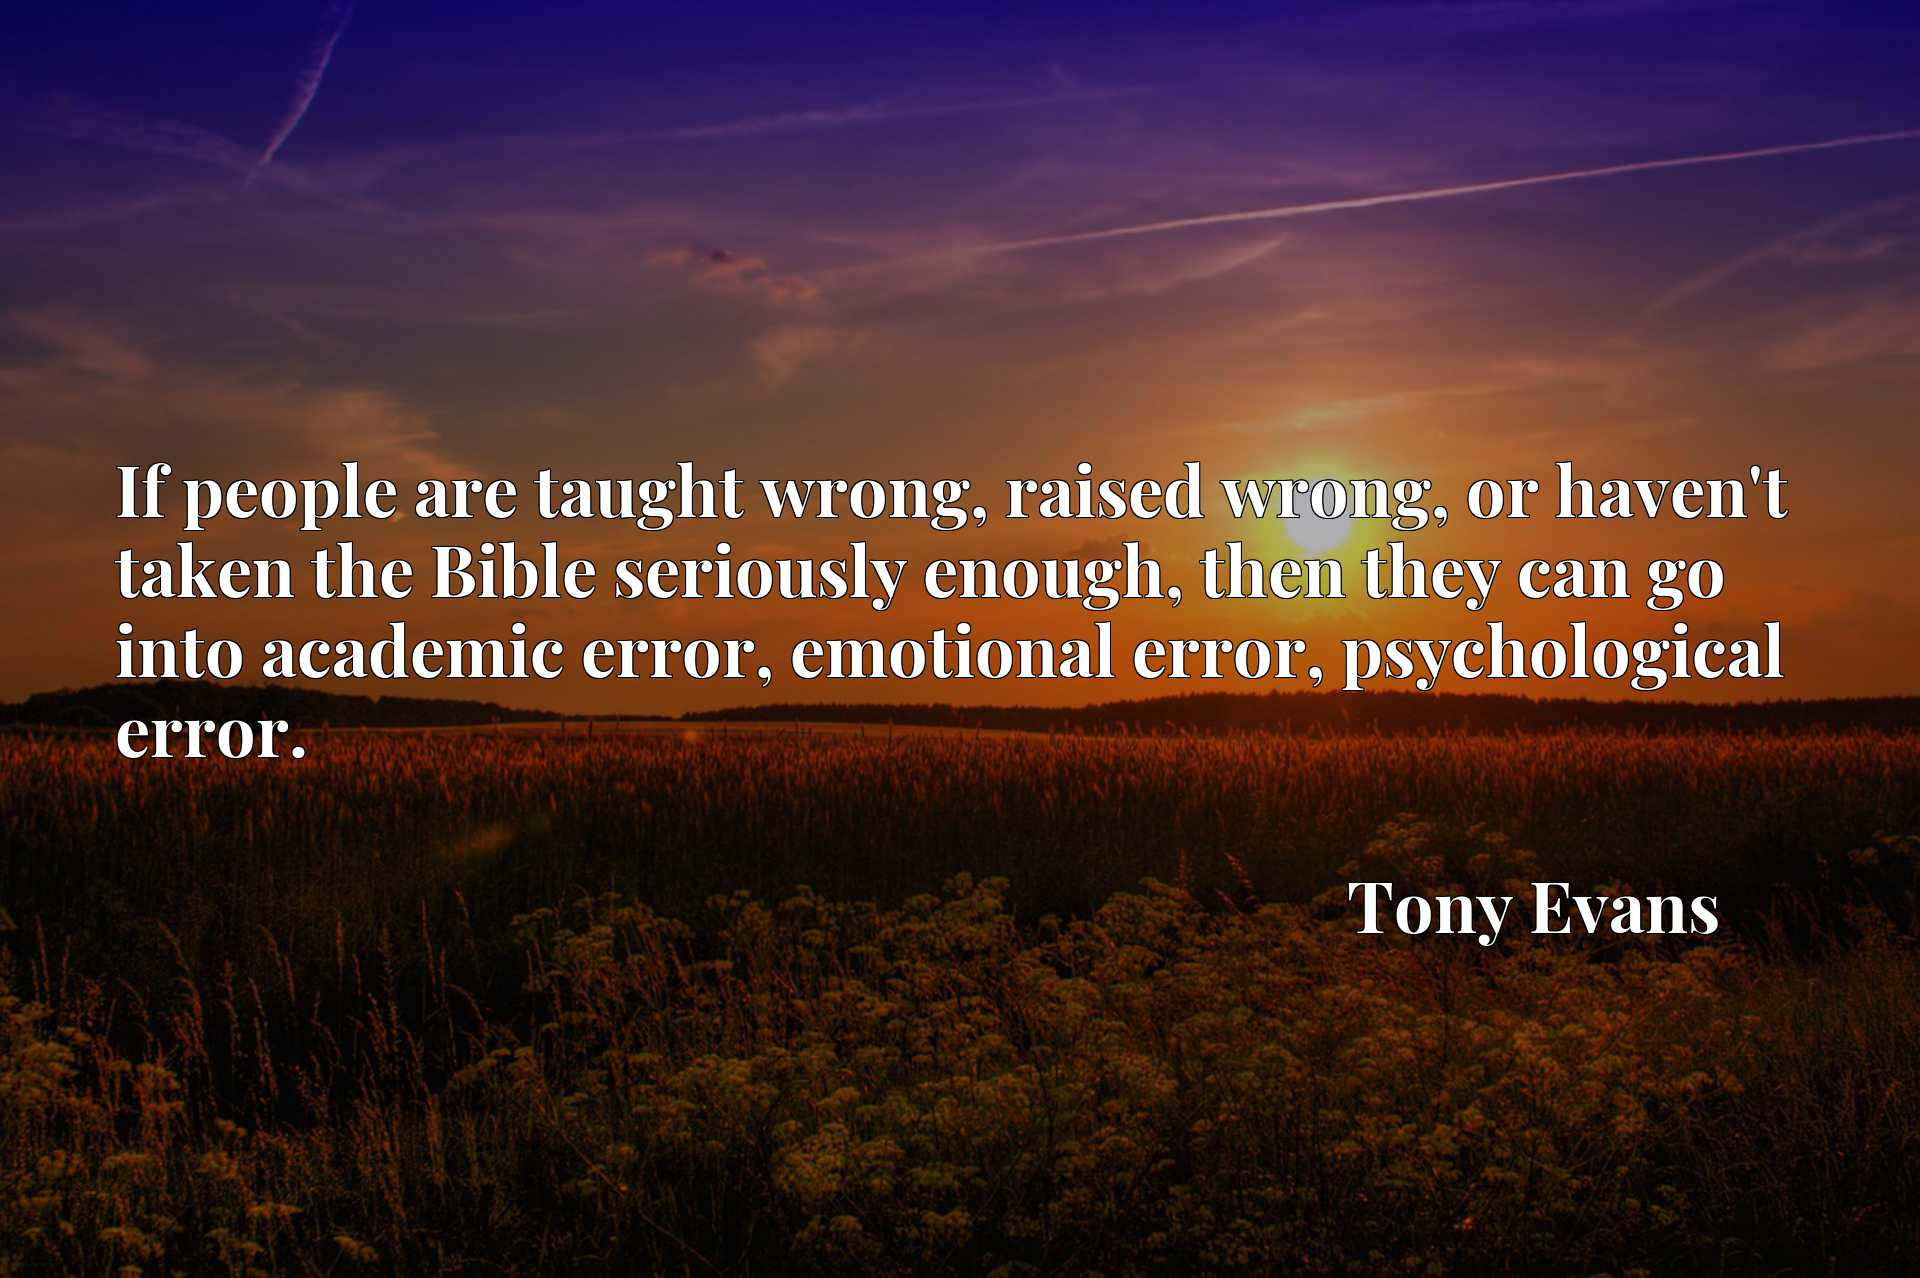 If people are taught wrong, raised wrong, or haven't taken the Bible seriously enough, then they can go into academic error, emotional error, psychological error.